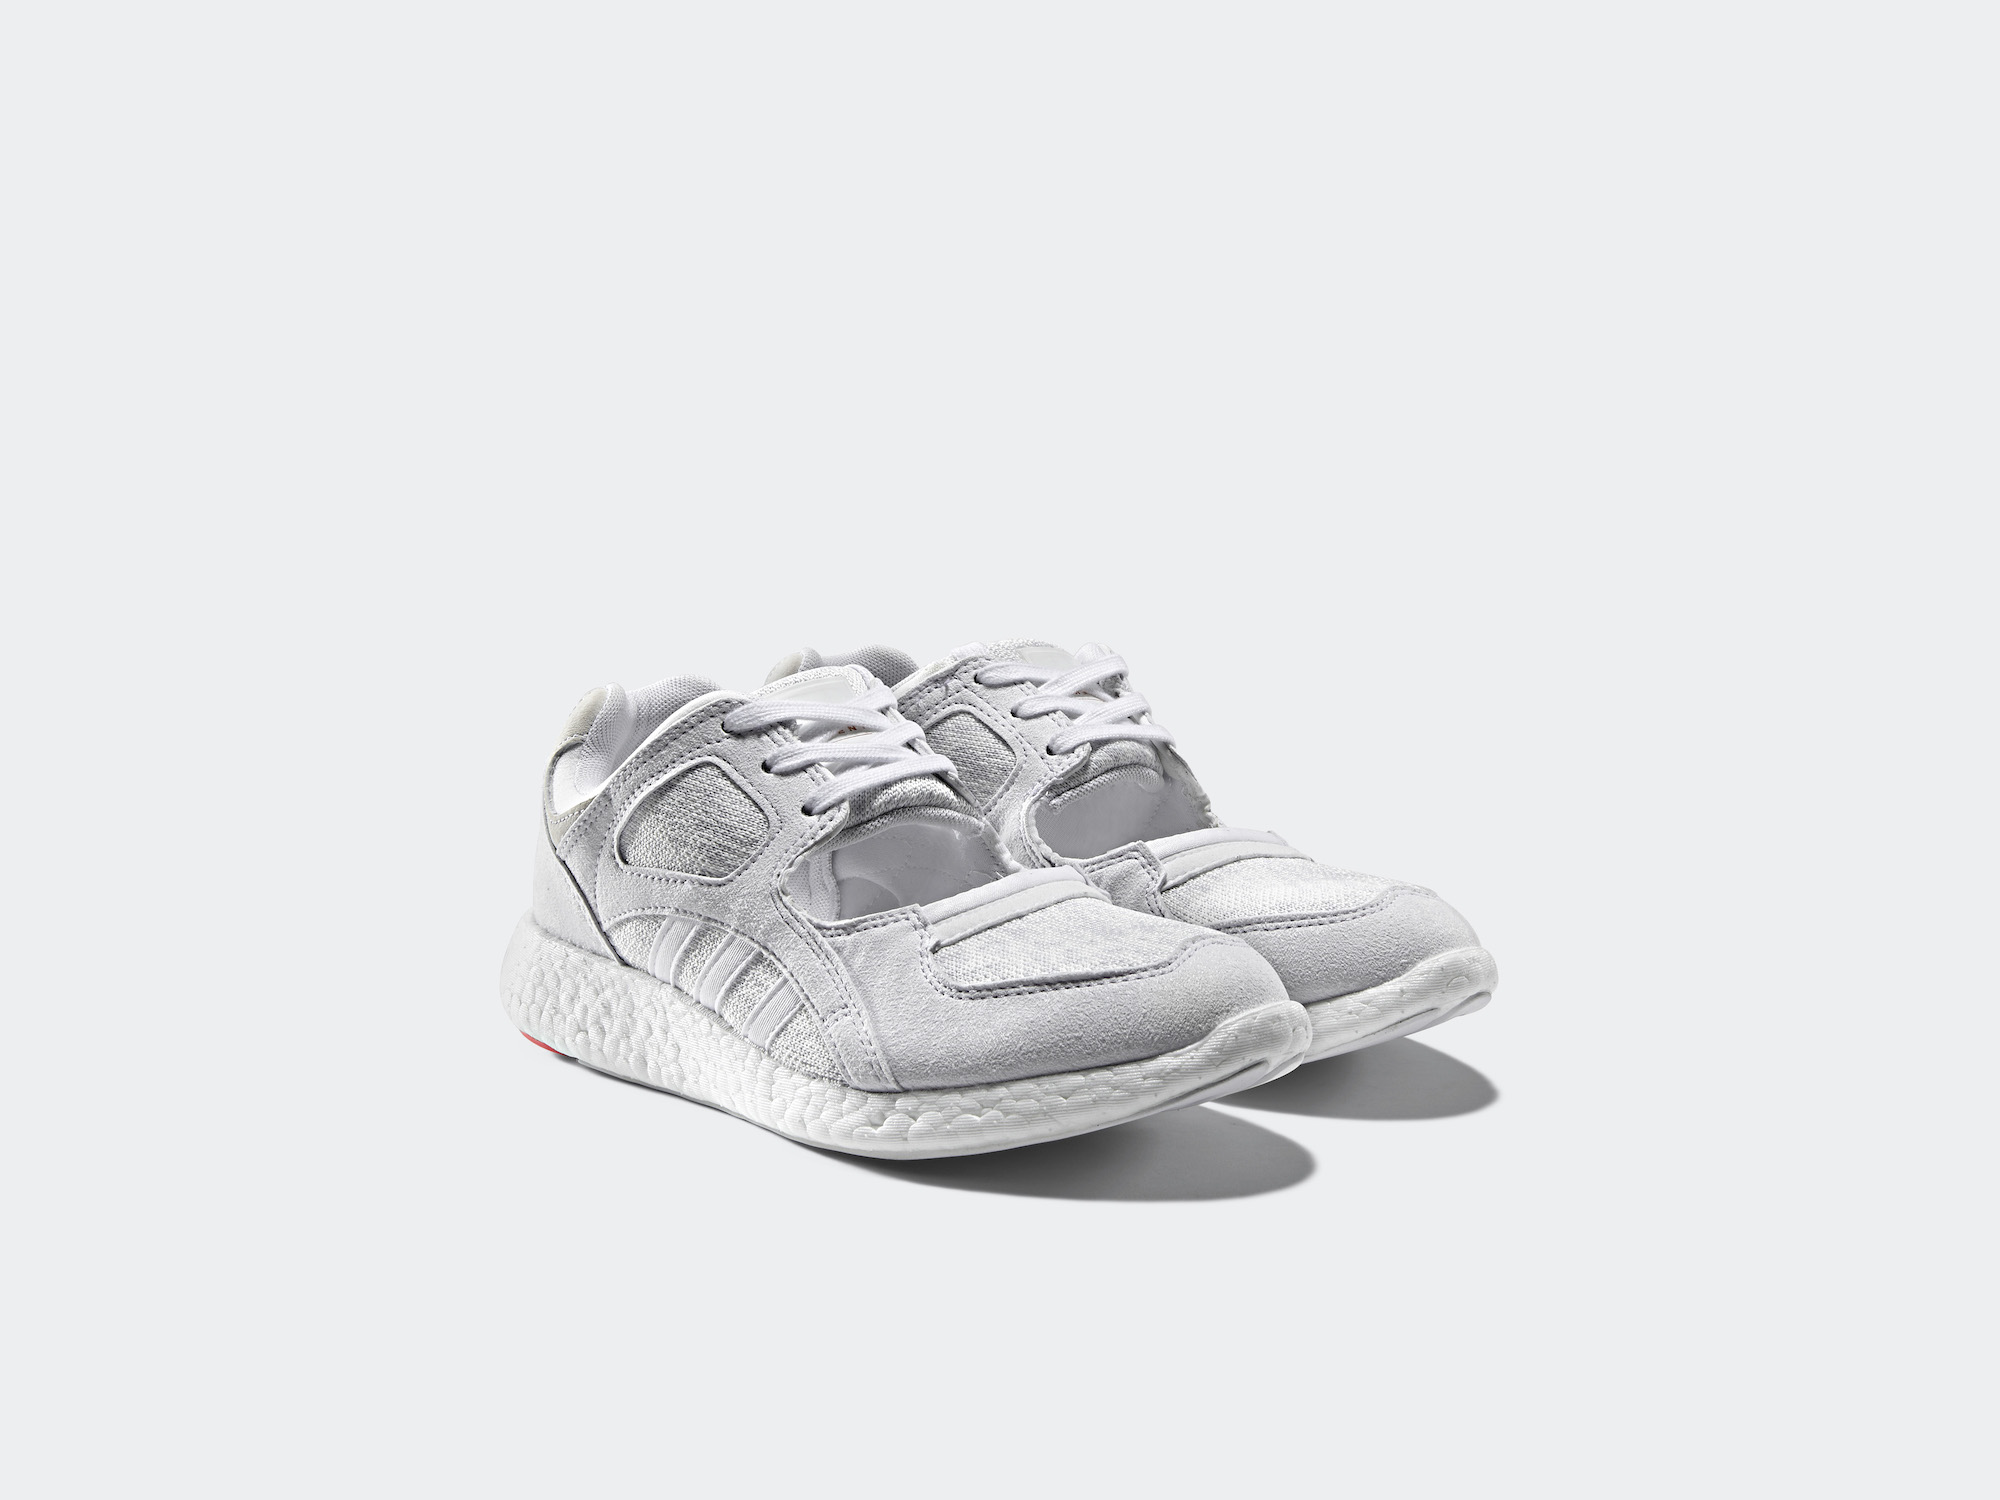 adidas EQT Cushion 93 Primeknit Shoes White adidas Regional